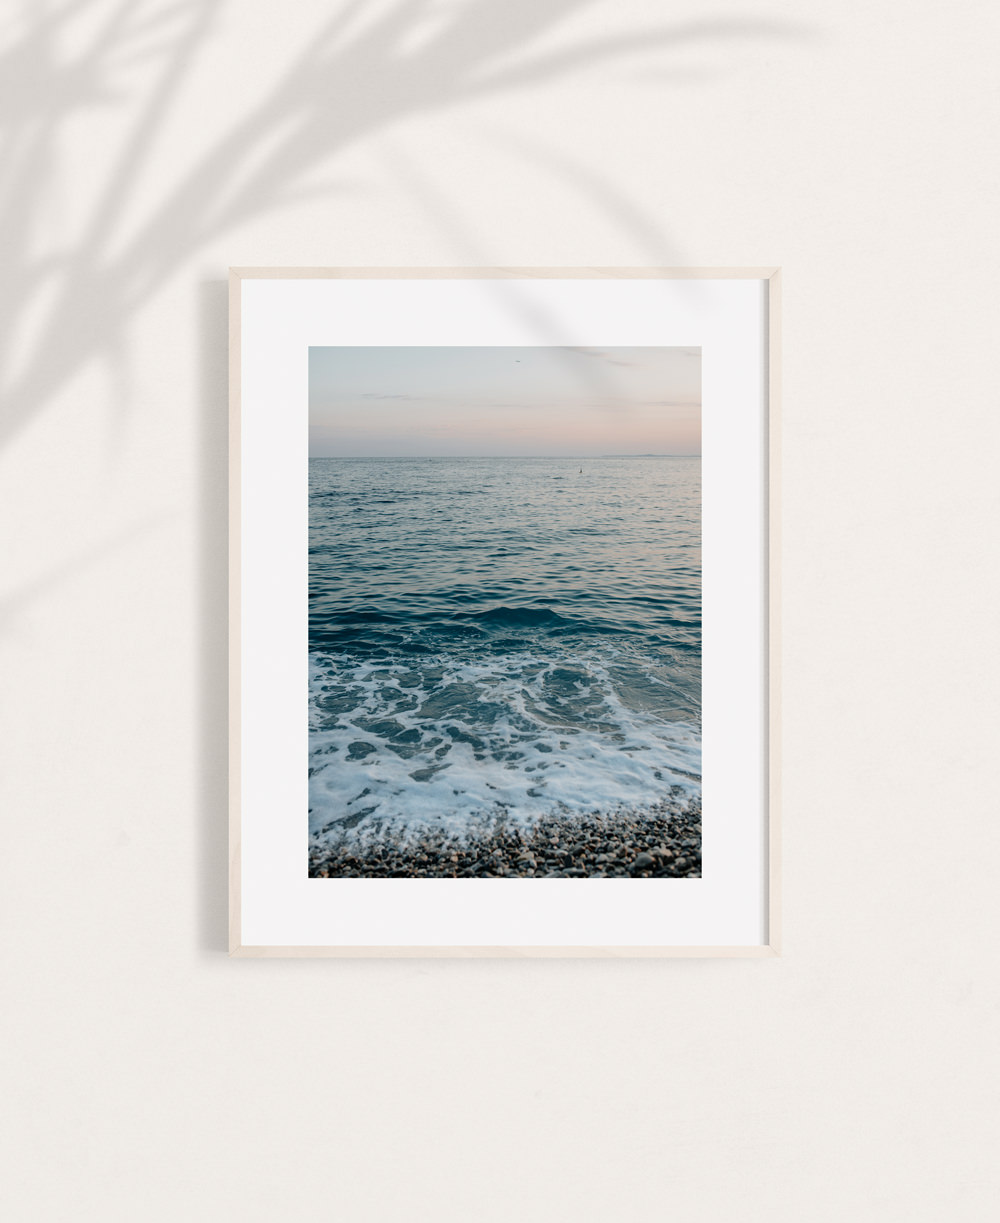 nicischwab-prints-009-nice seaside